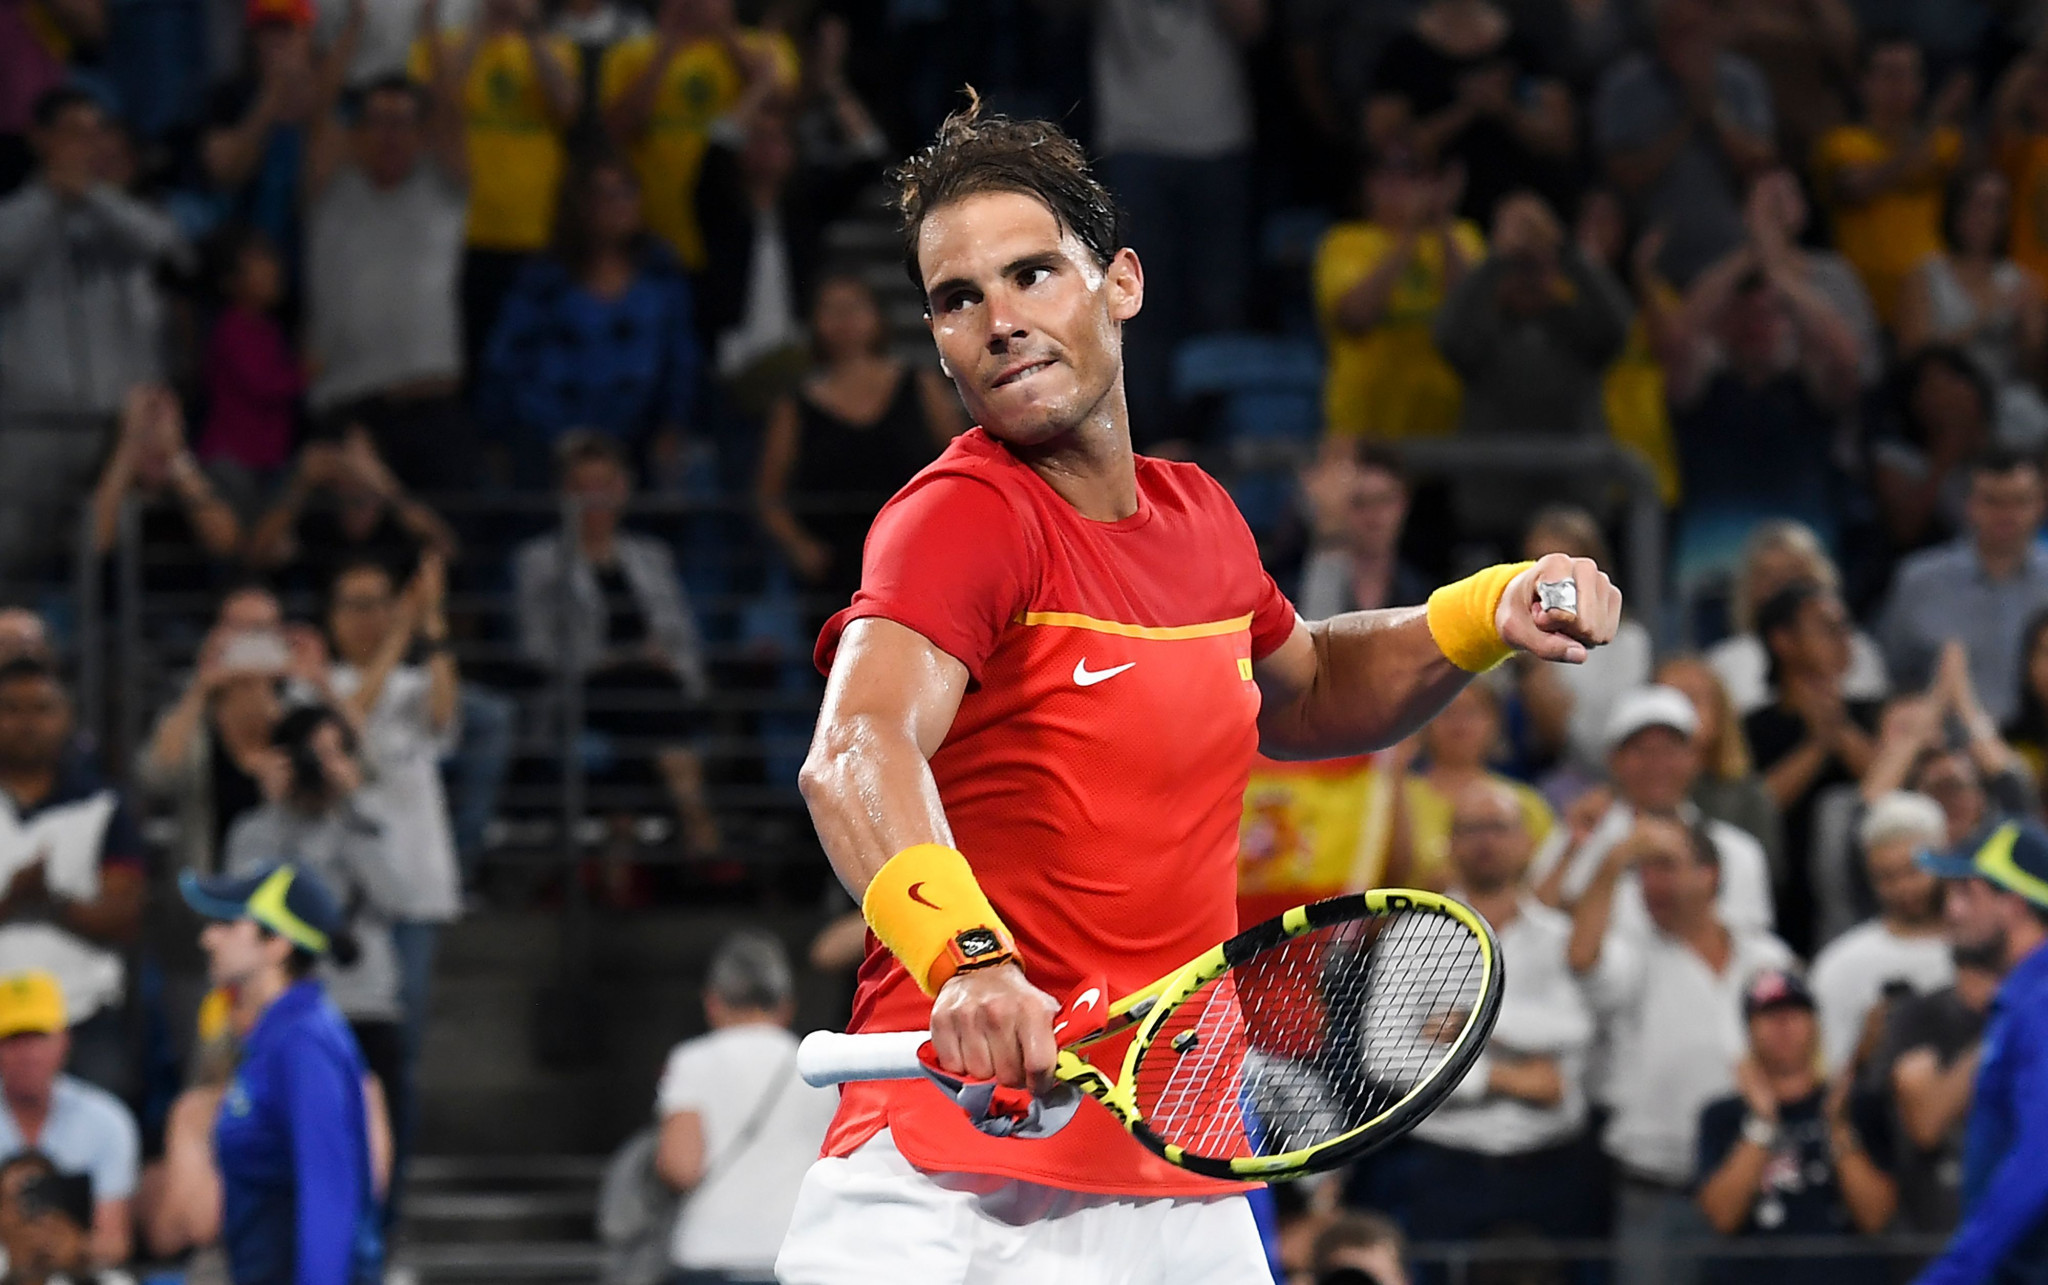 Nadal win ends Australia challenge and earns ATP Cup final place for Spain